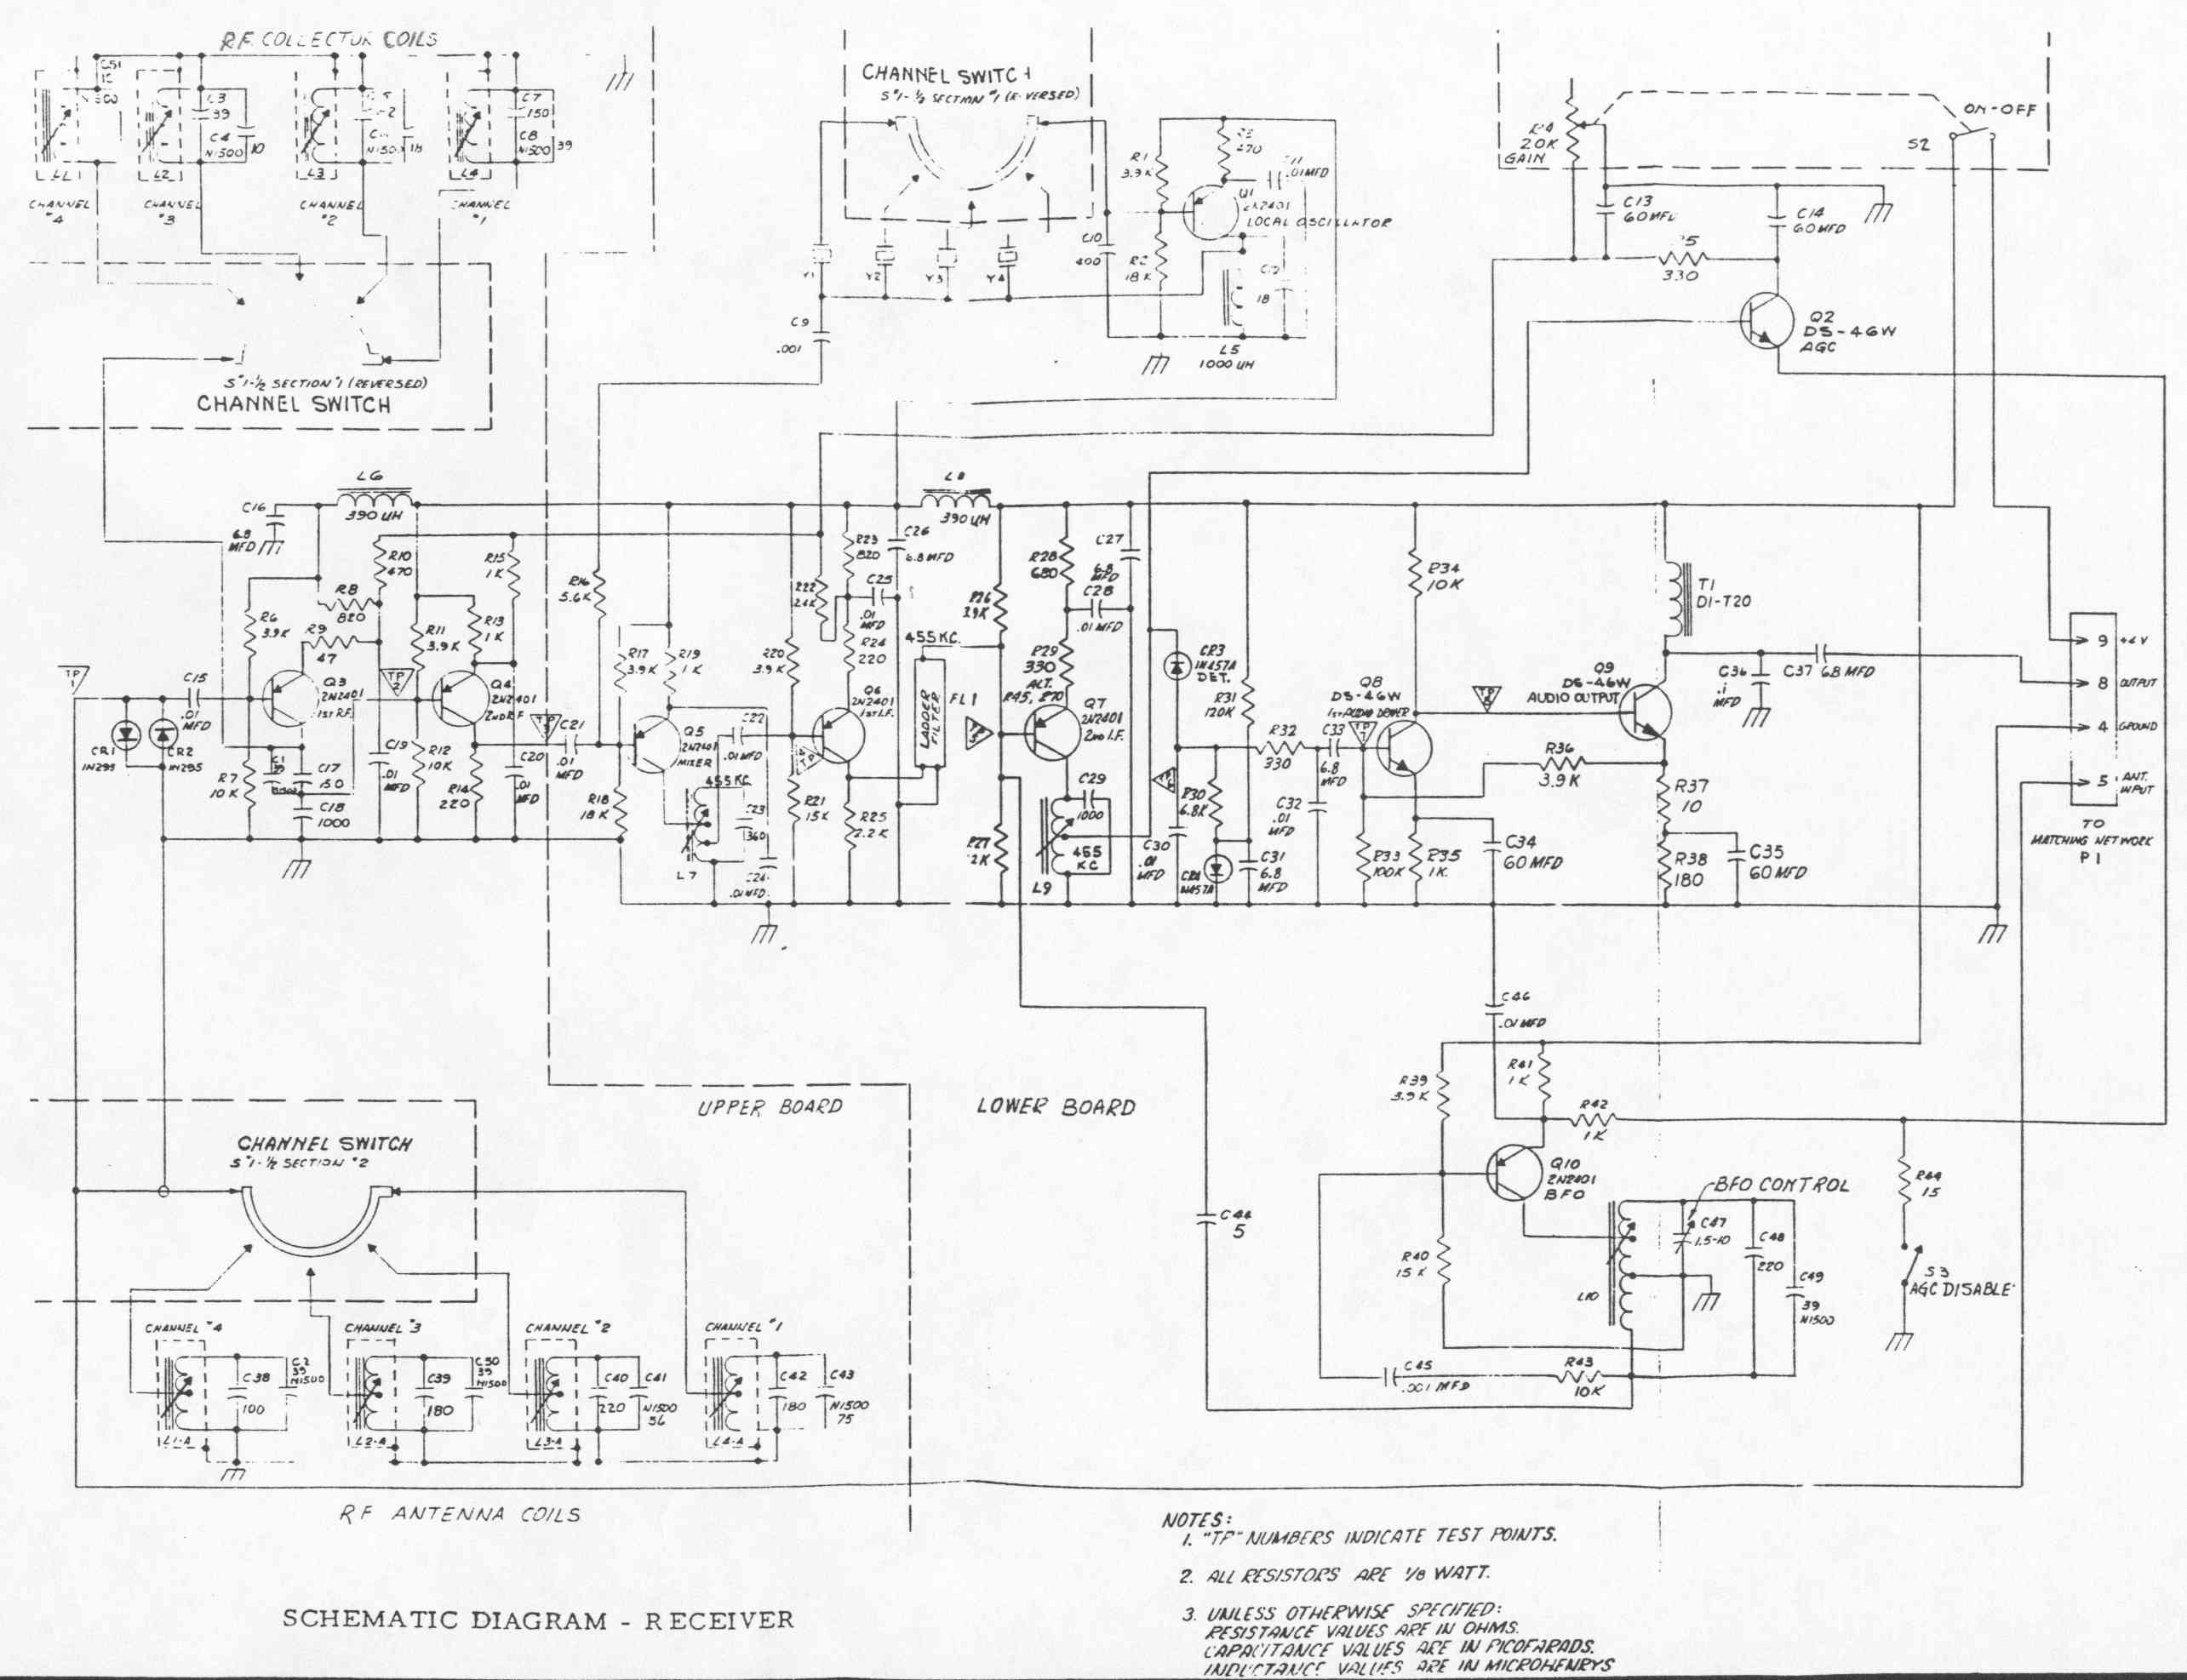 Delphi Cd Player Wiring Diagram